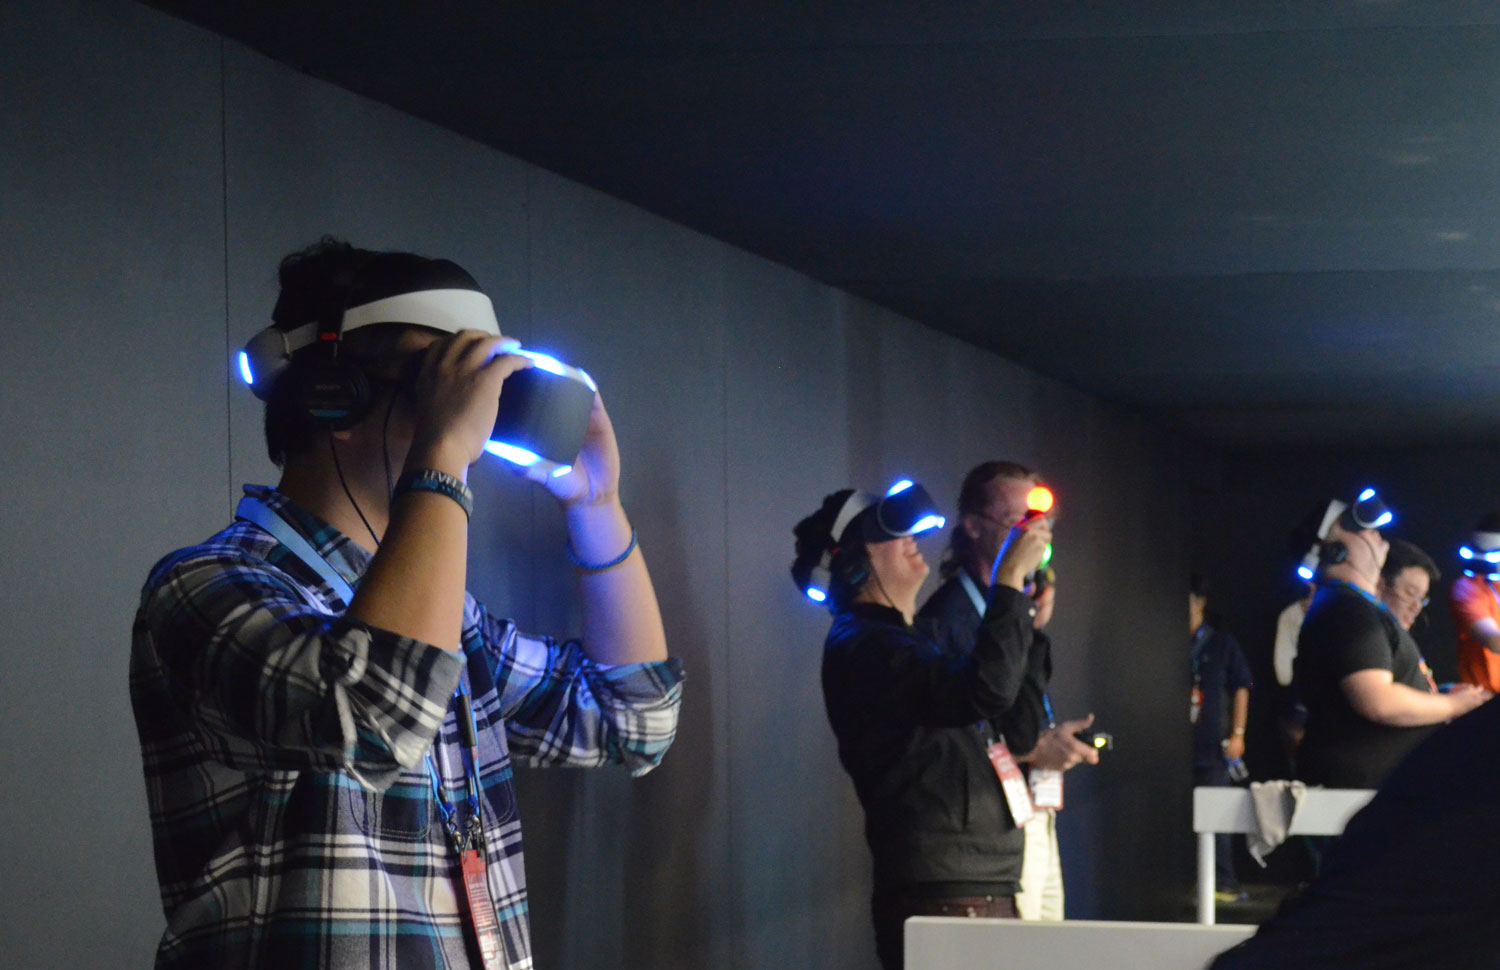 GDC 2014: Sony Project Morpheus PS4 VR Headset 'The Deep' Gameplay